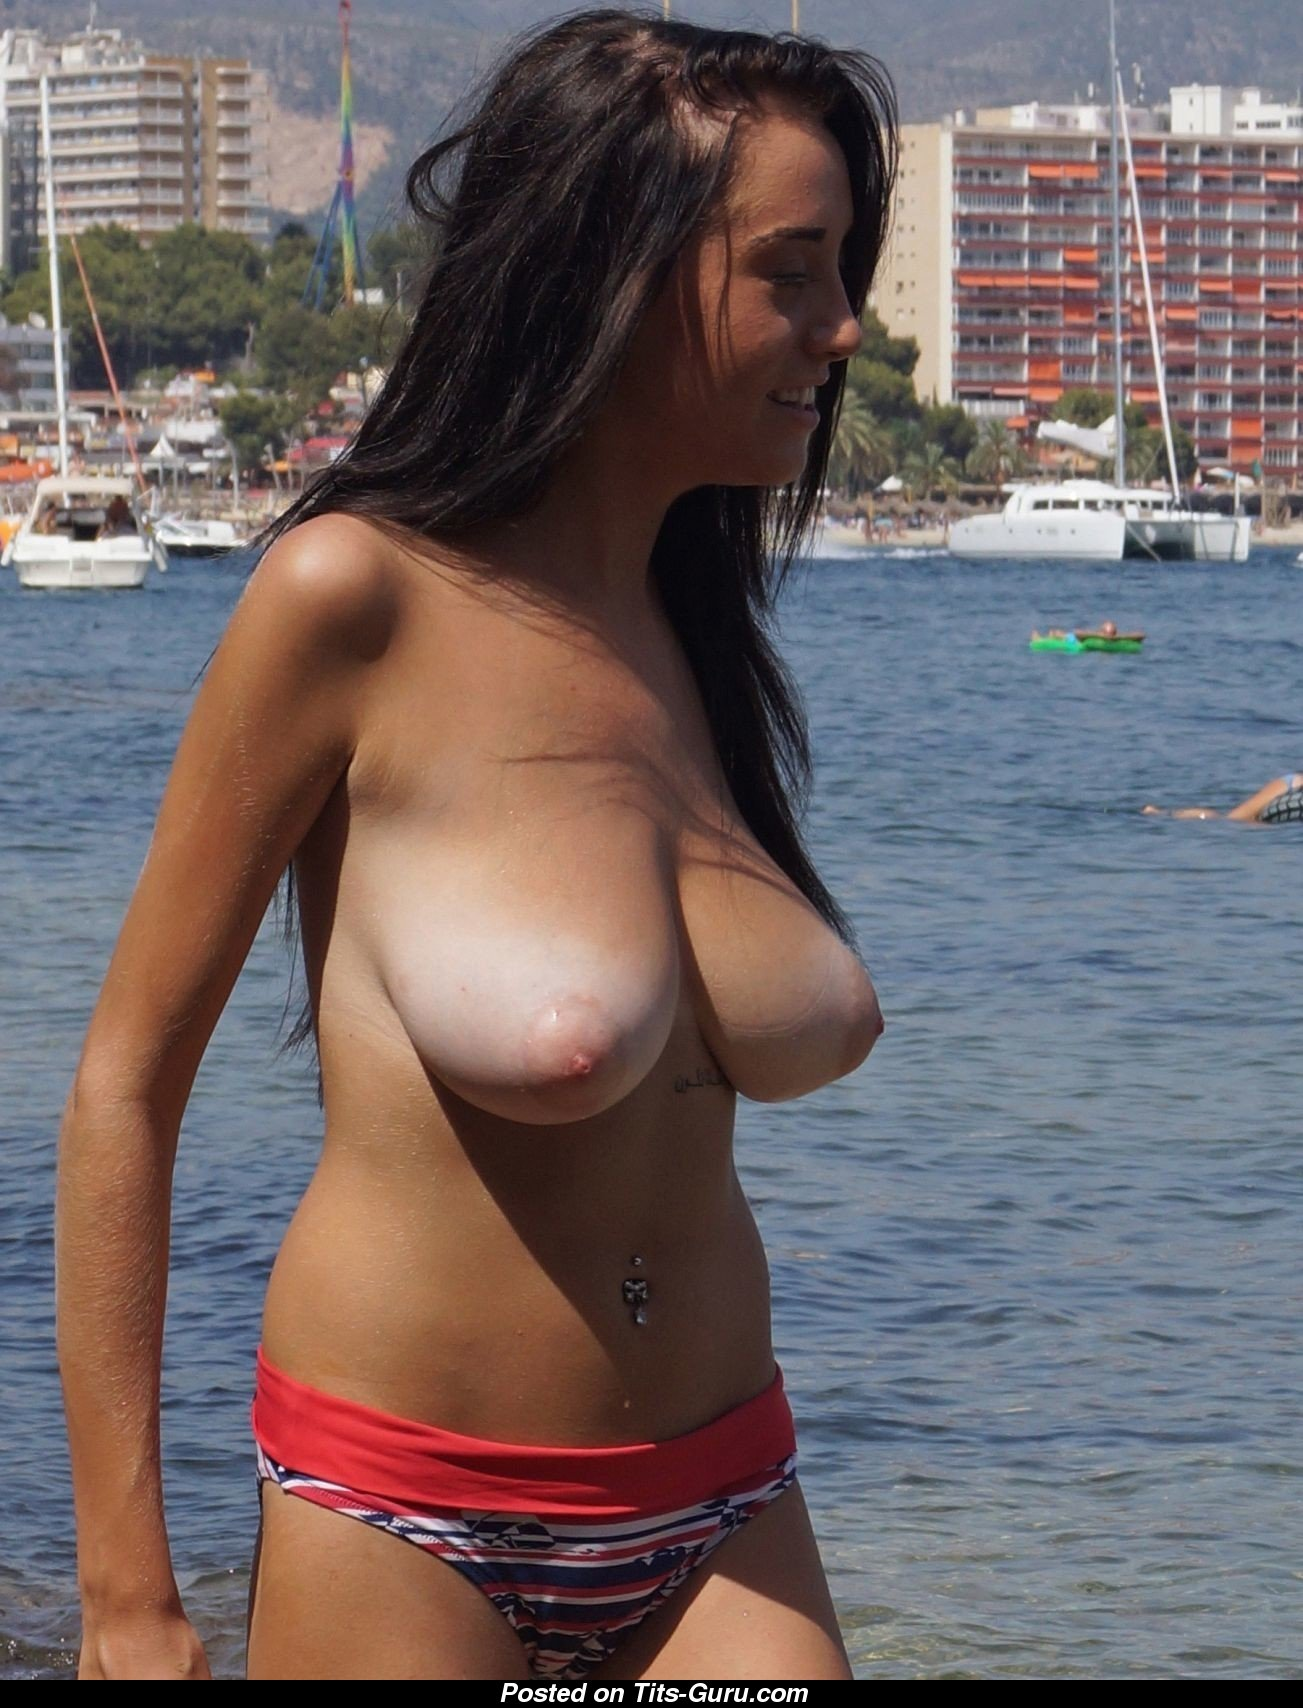 topless amateur brunette with medium natural tittes picture | 25.03